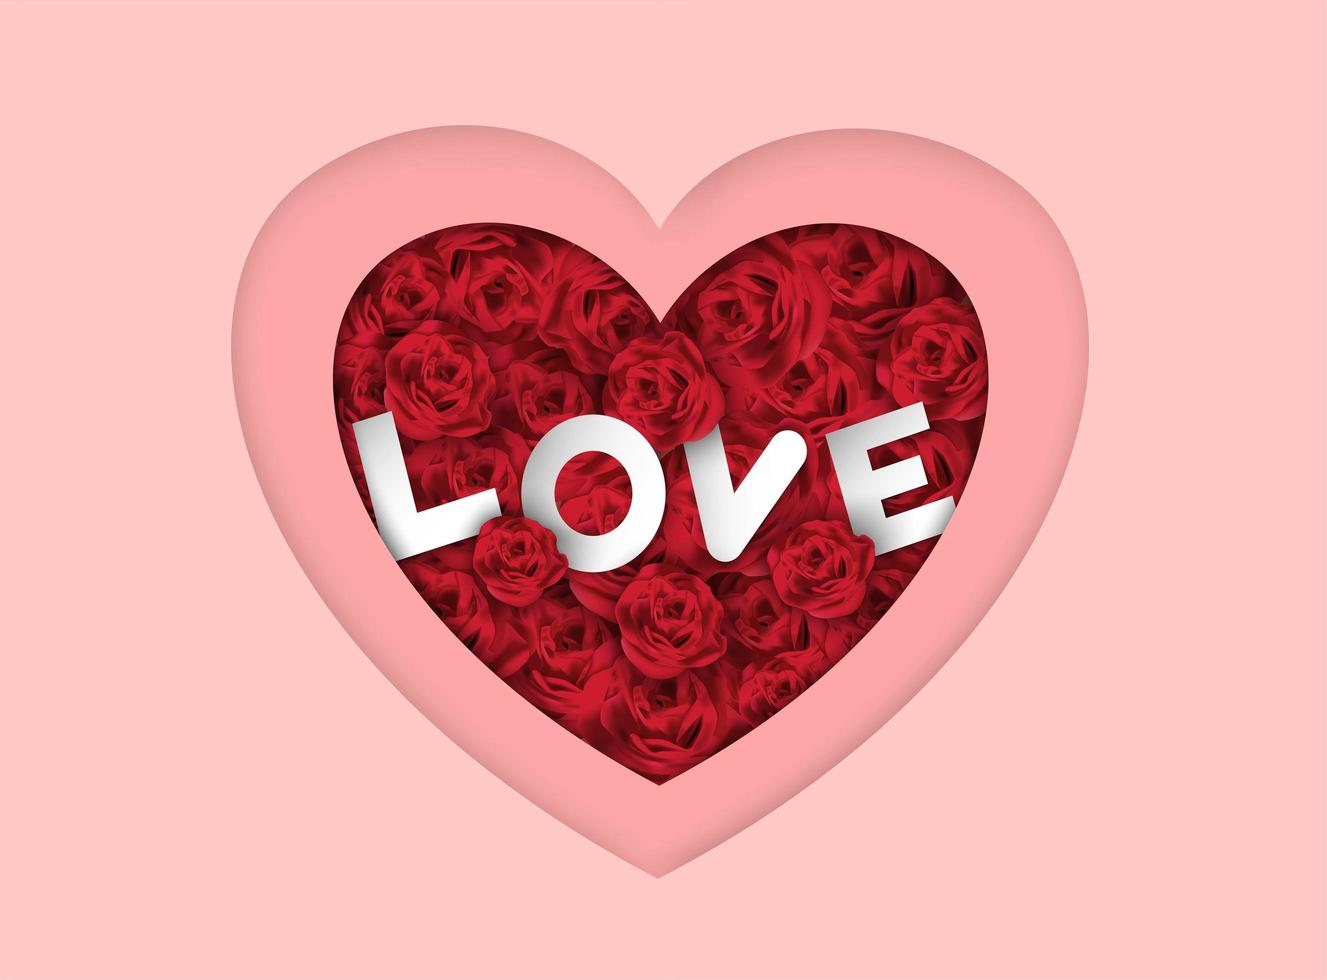 Valentines day pink layered heart background with roses and Love text